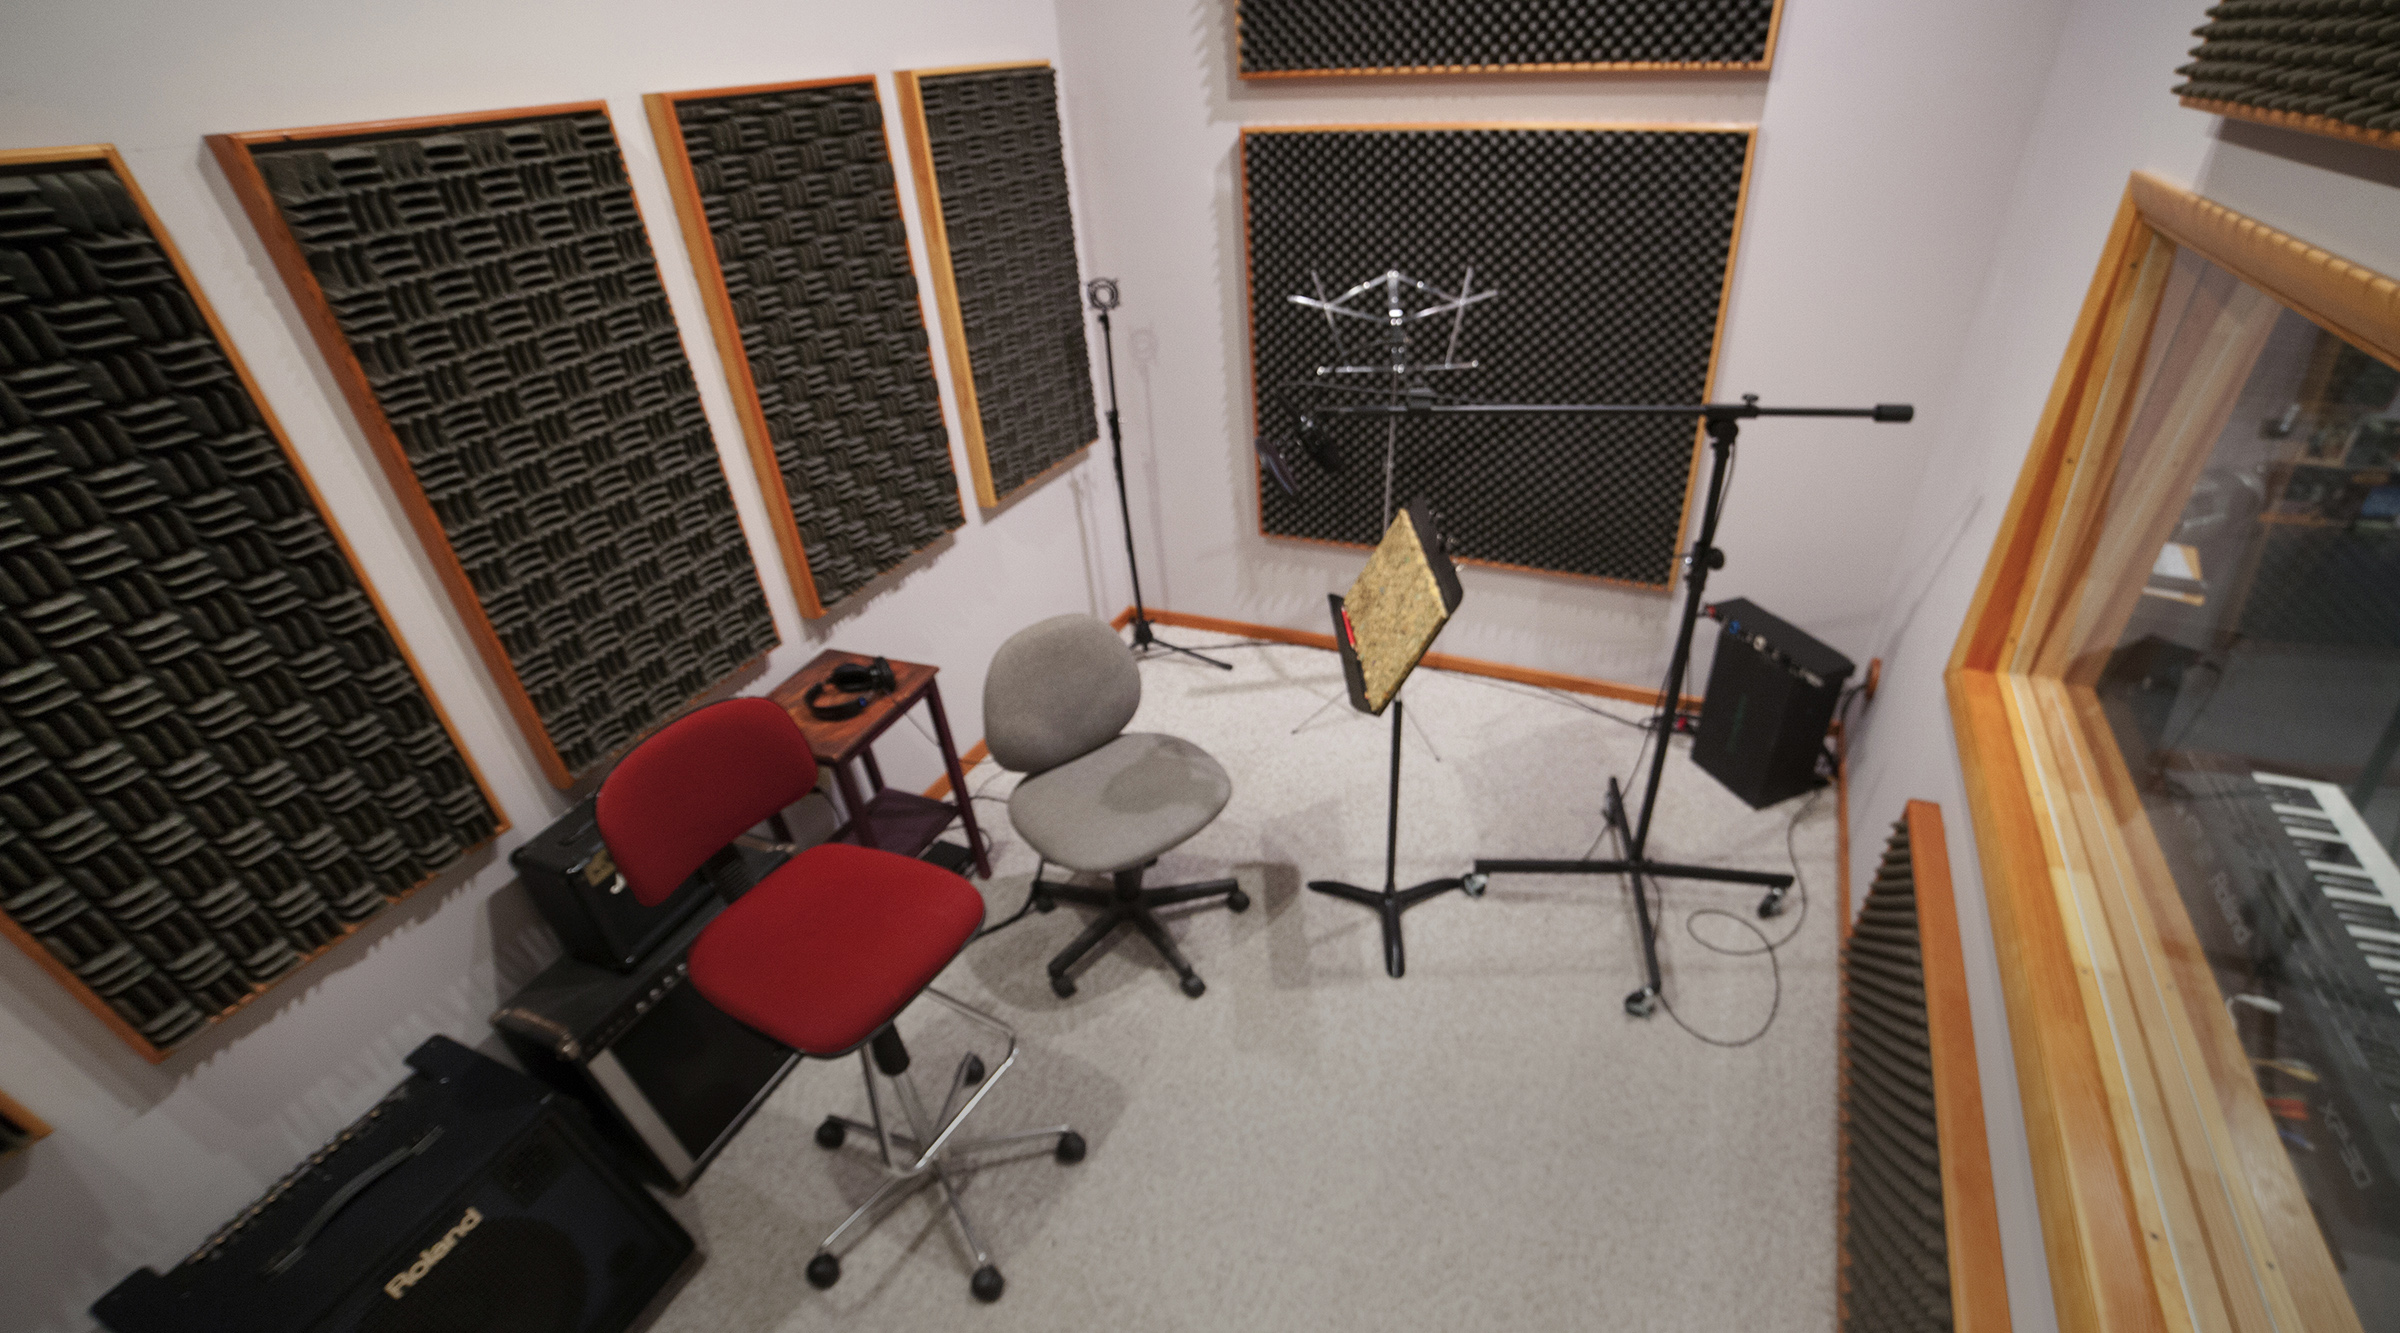 """Our recording room is far larger than a typical narration booth, and far more comfortable. Custom built as a room-within-a-room-within-a-room, it's dead quiet, and big enough for a string quartet or a very large drum kit. It's tunable - the Sonex® panels on the wall are removable so we can get just the right brightness, and we also have Sonex partitions that can separate performers so they can work together but be recorded cleanly on separate tracks. The booth is also fitted with custom-built silent ventilation, so the air conditioning or heating can keep the room at just the right temperature, even while recording. We weren't kidding about """"comfortable""""."""